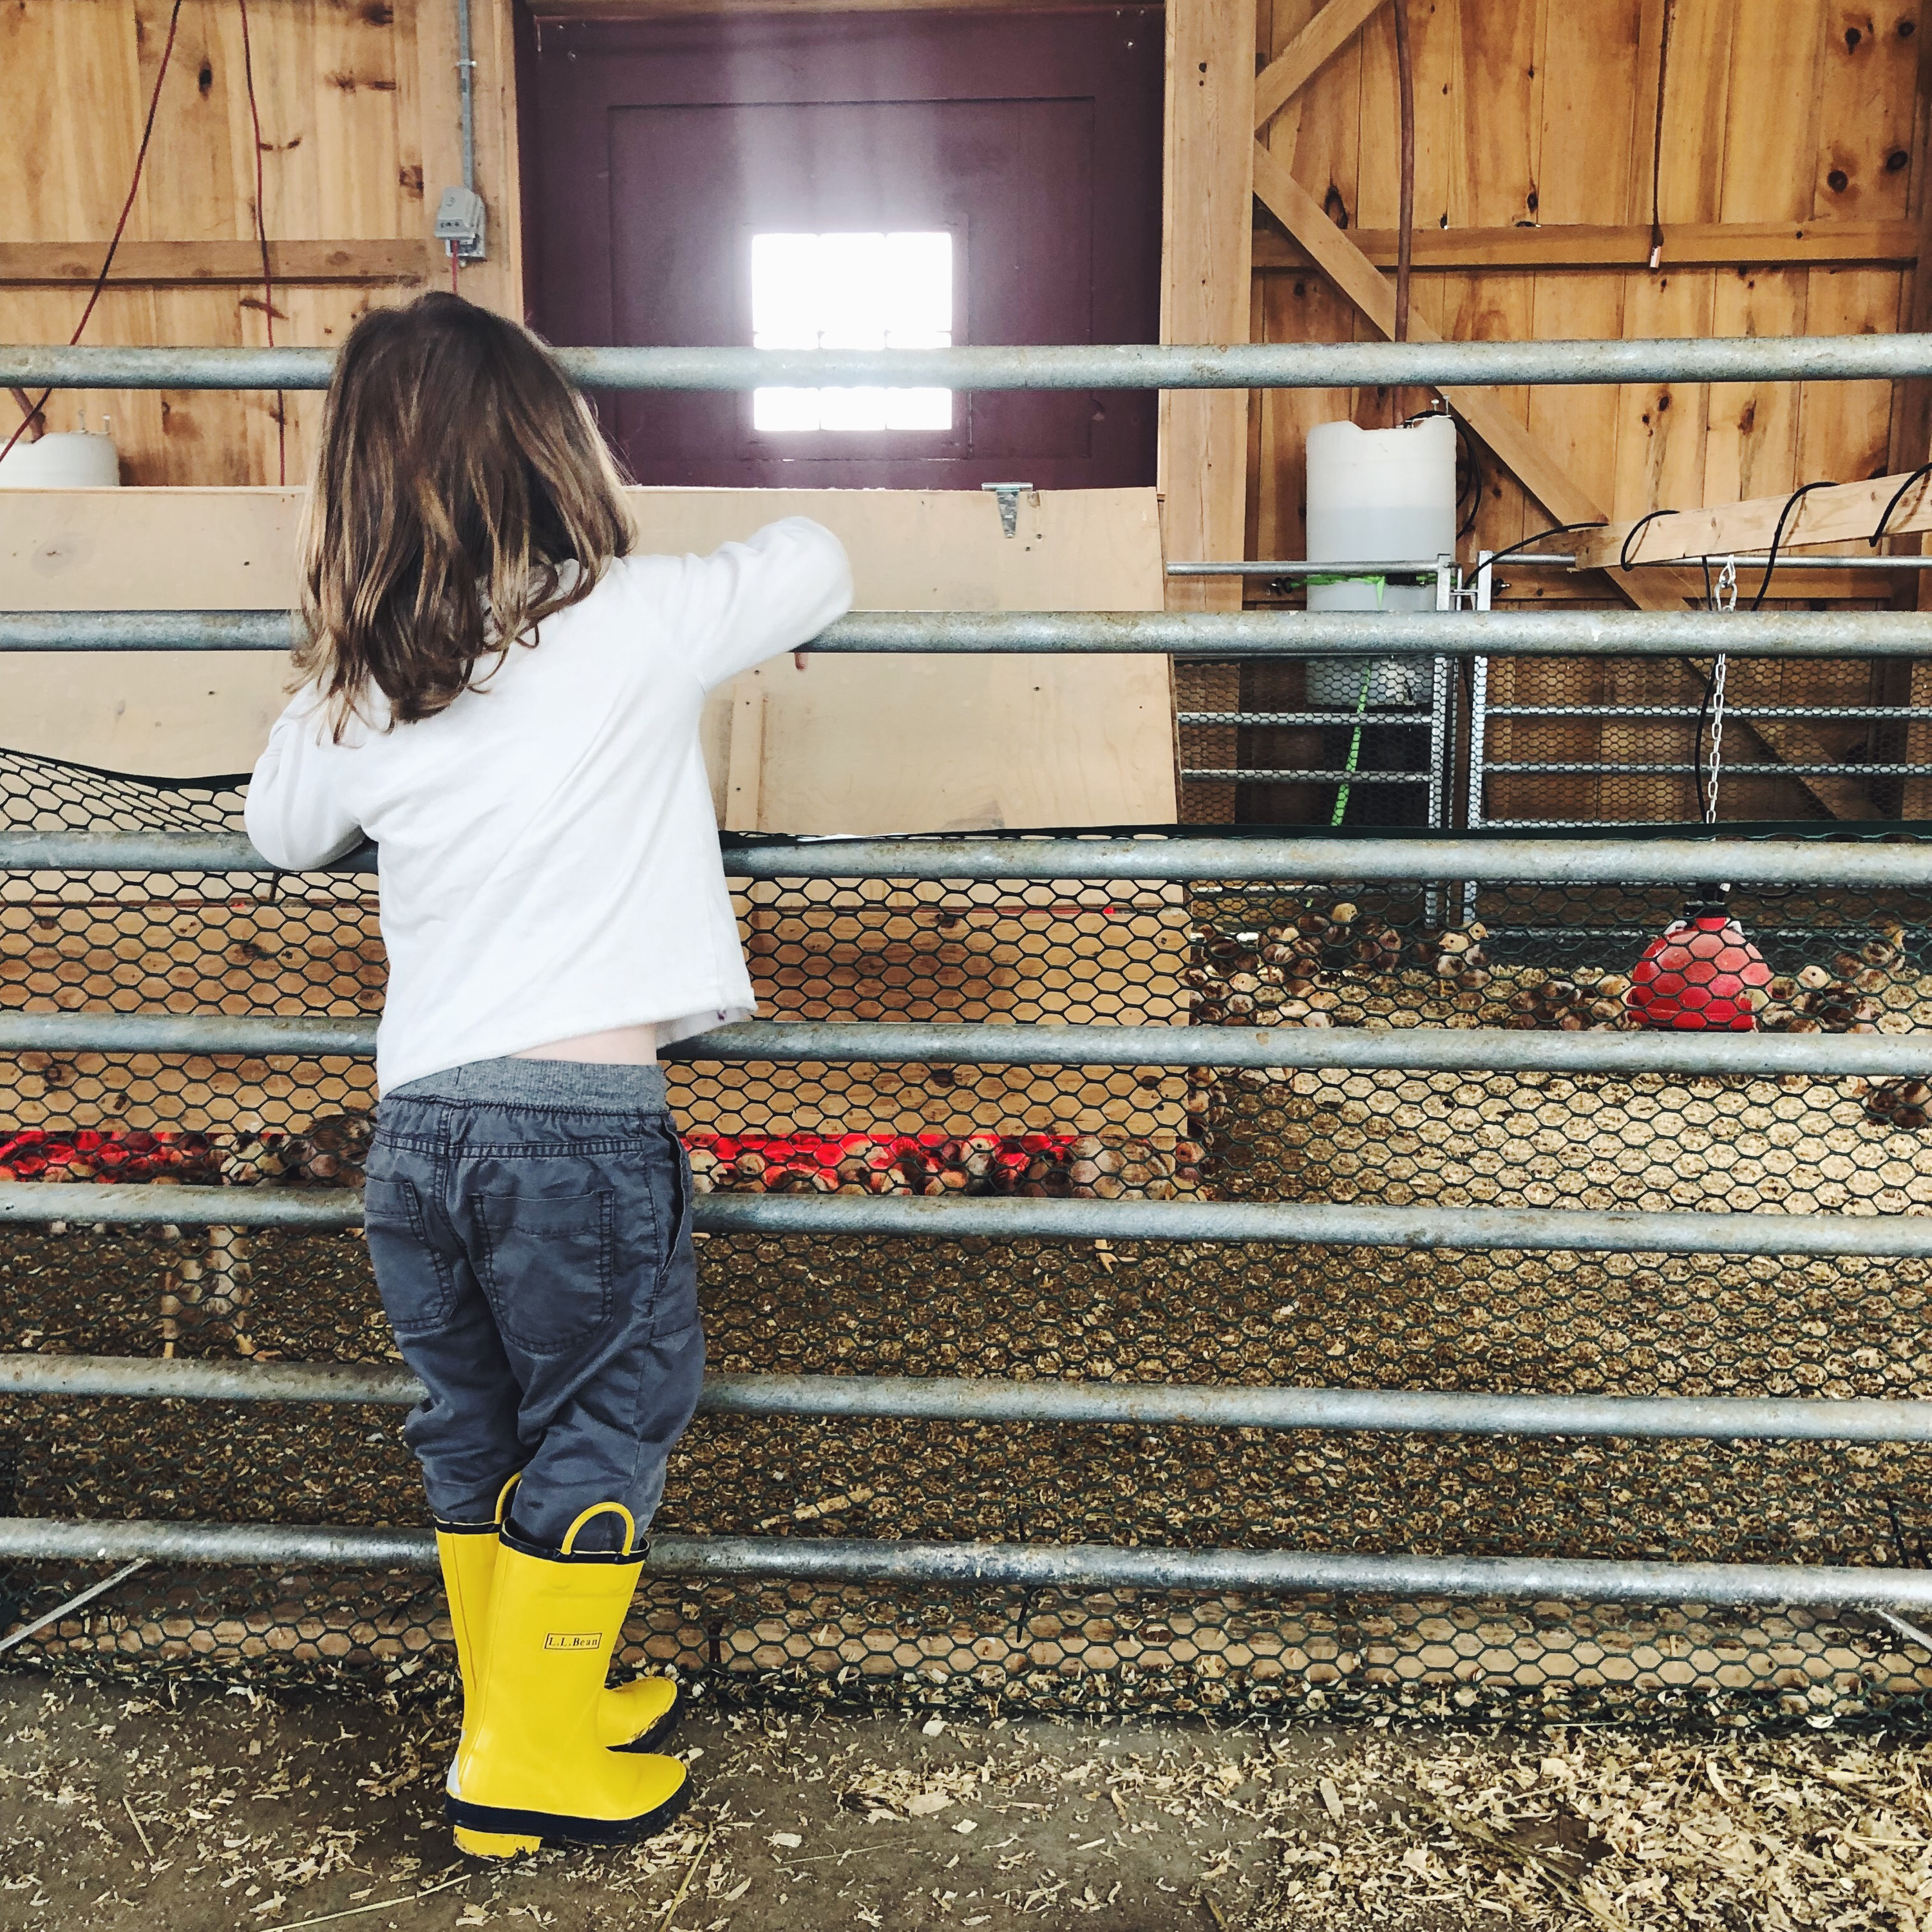 Young child reaching over a low fence looking at baby chickens.